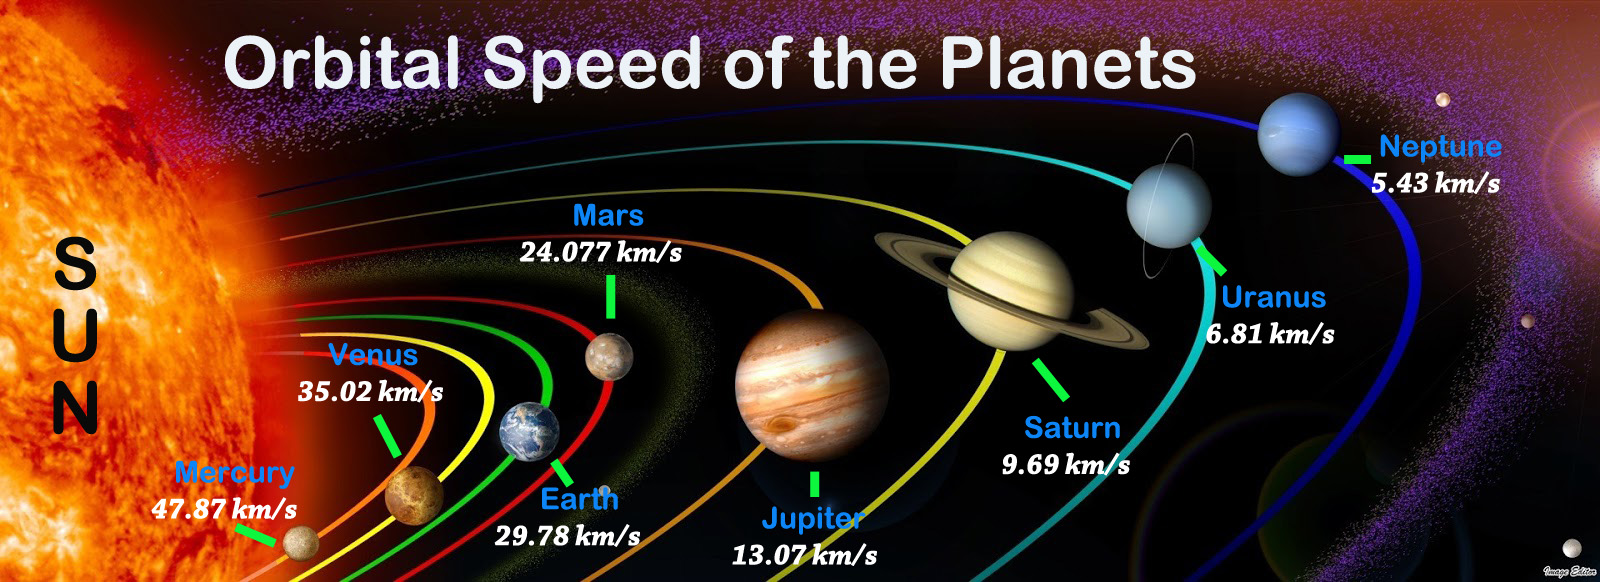 Orbital Speed Of Planets In Order Rotational Speed Comparison